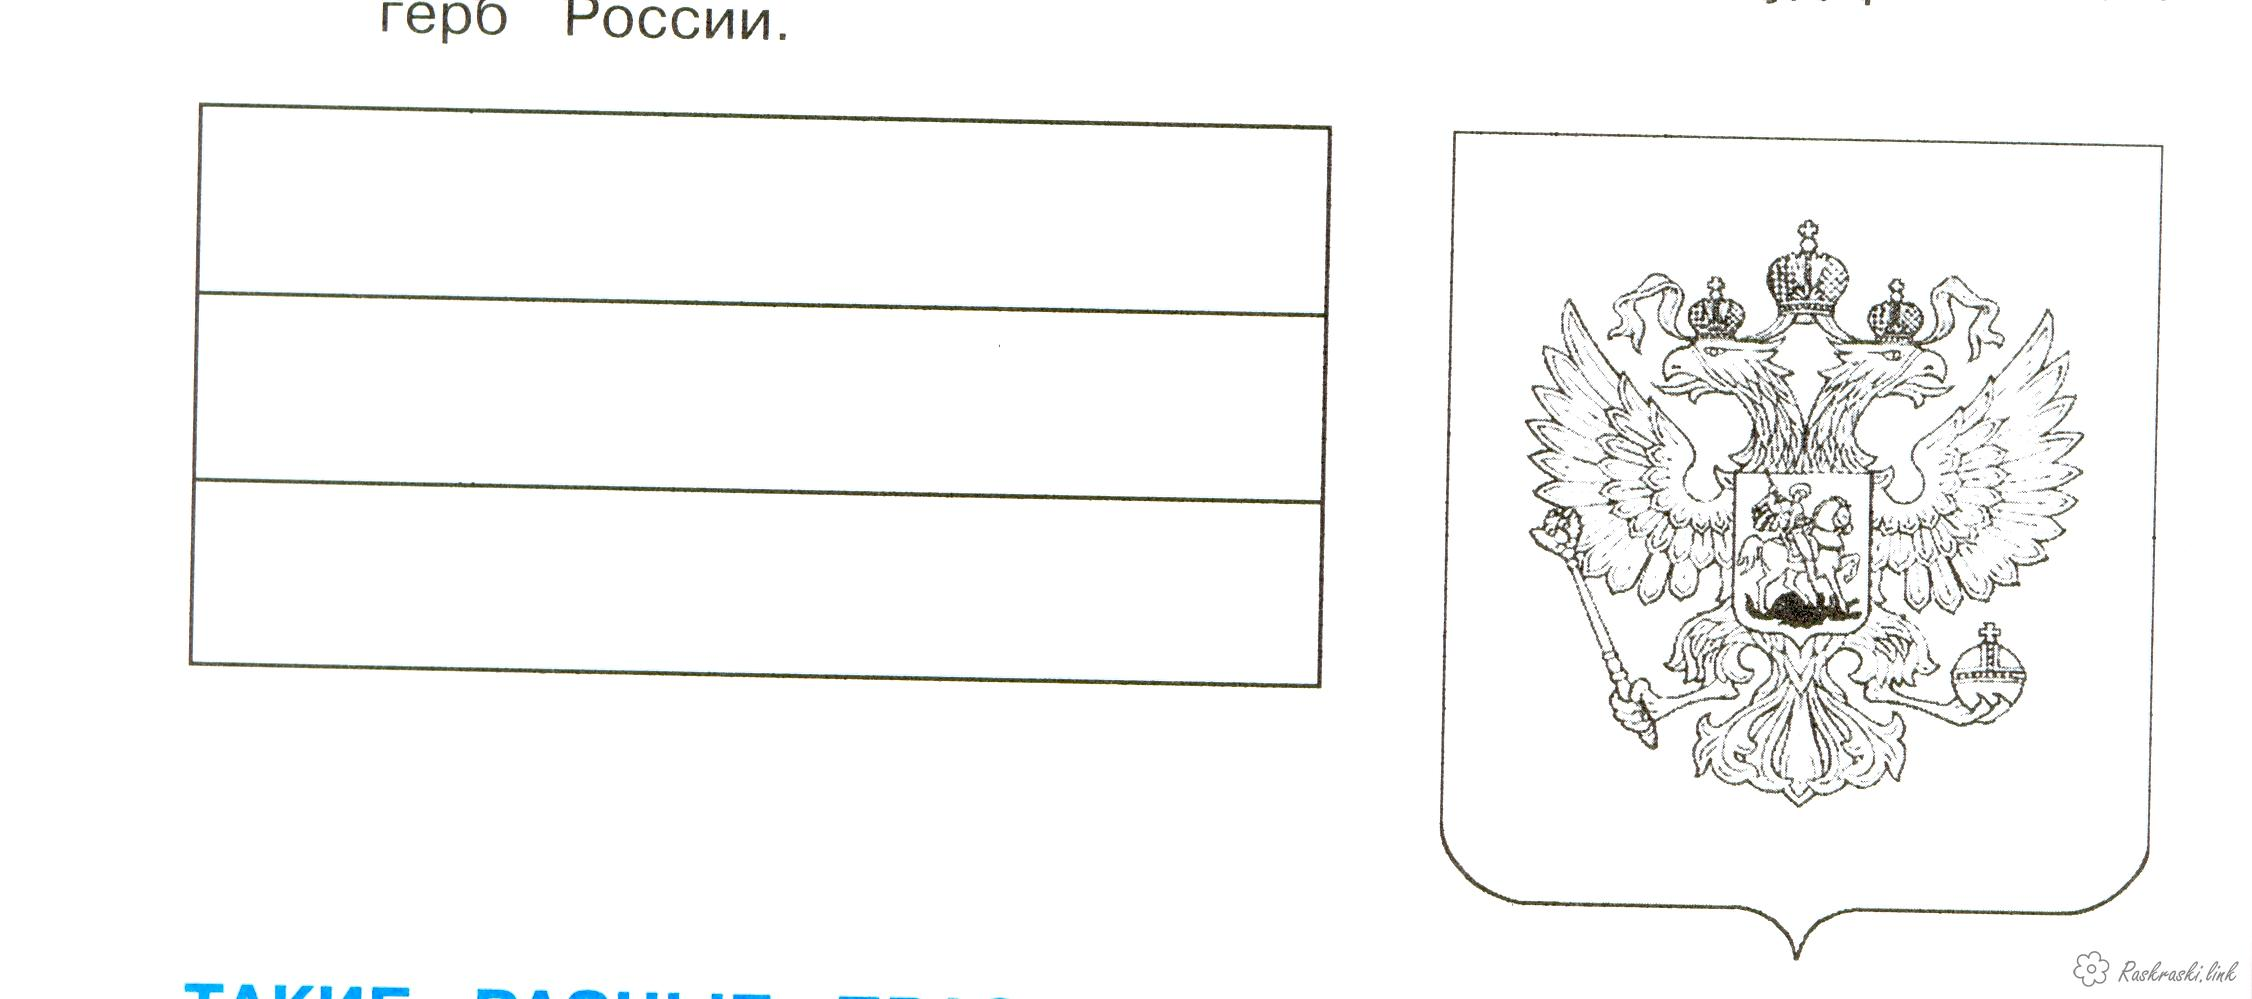 Coloring Flag and Emblem of the Russian Federation The coloring pages of the coat of arms and flag of the Russian Federation